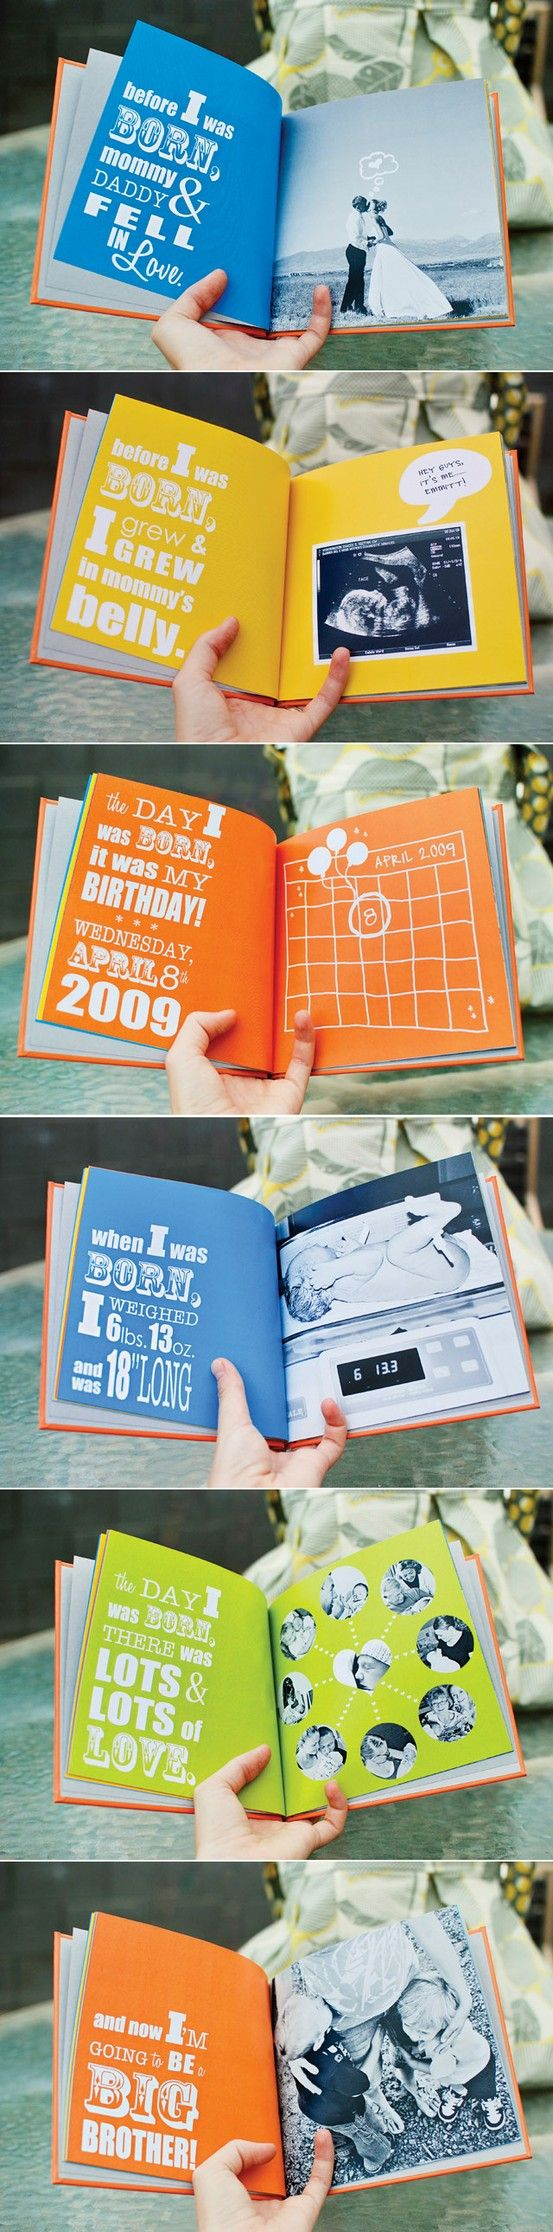 "Adorable!!  7 Baby Photo Book Ideas My boys loved the ""when they were born stories"". Making it into an actual book....love it"